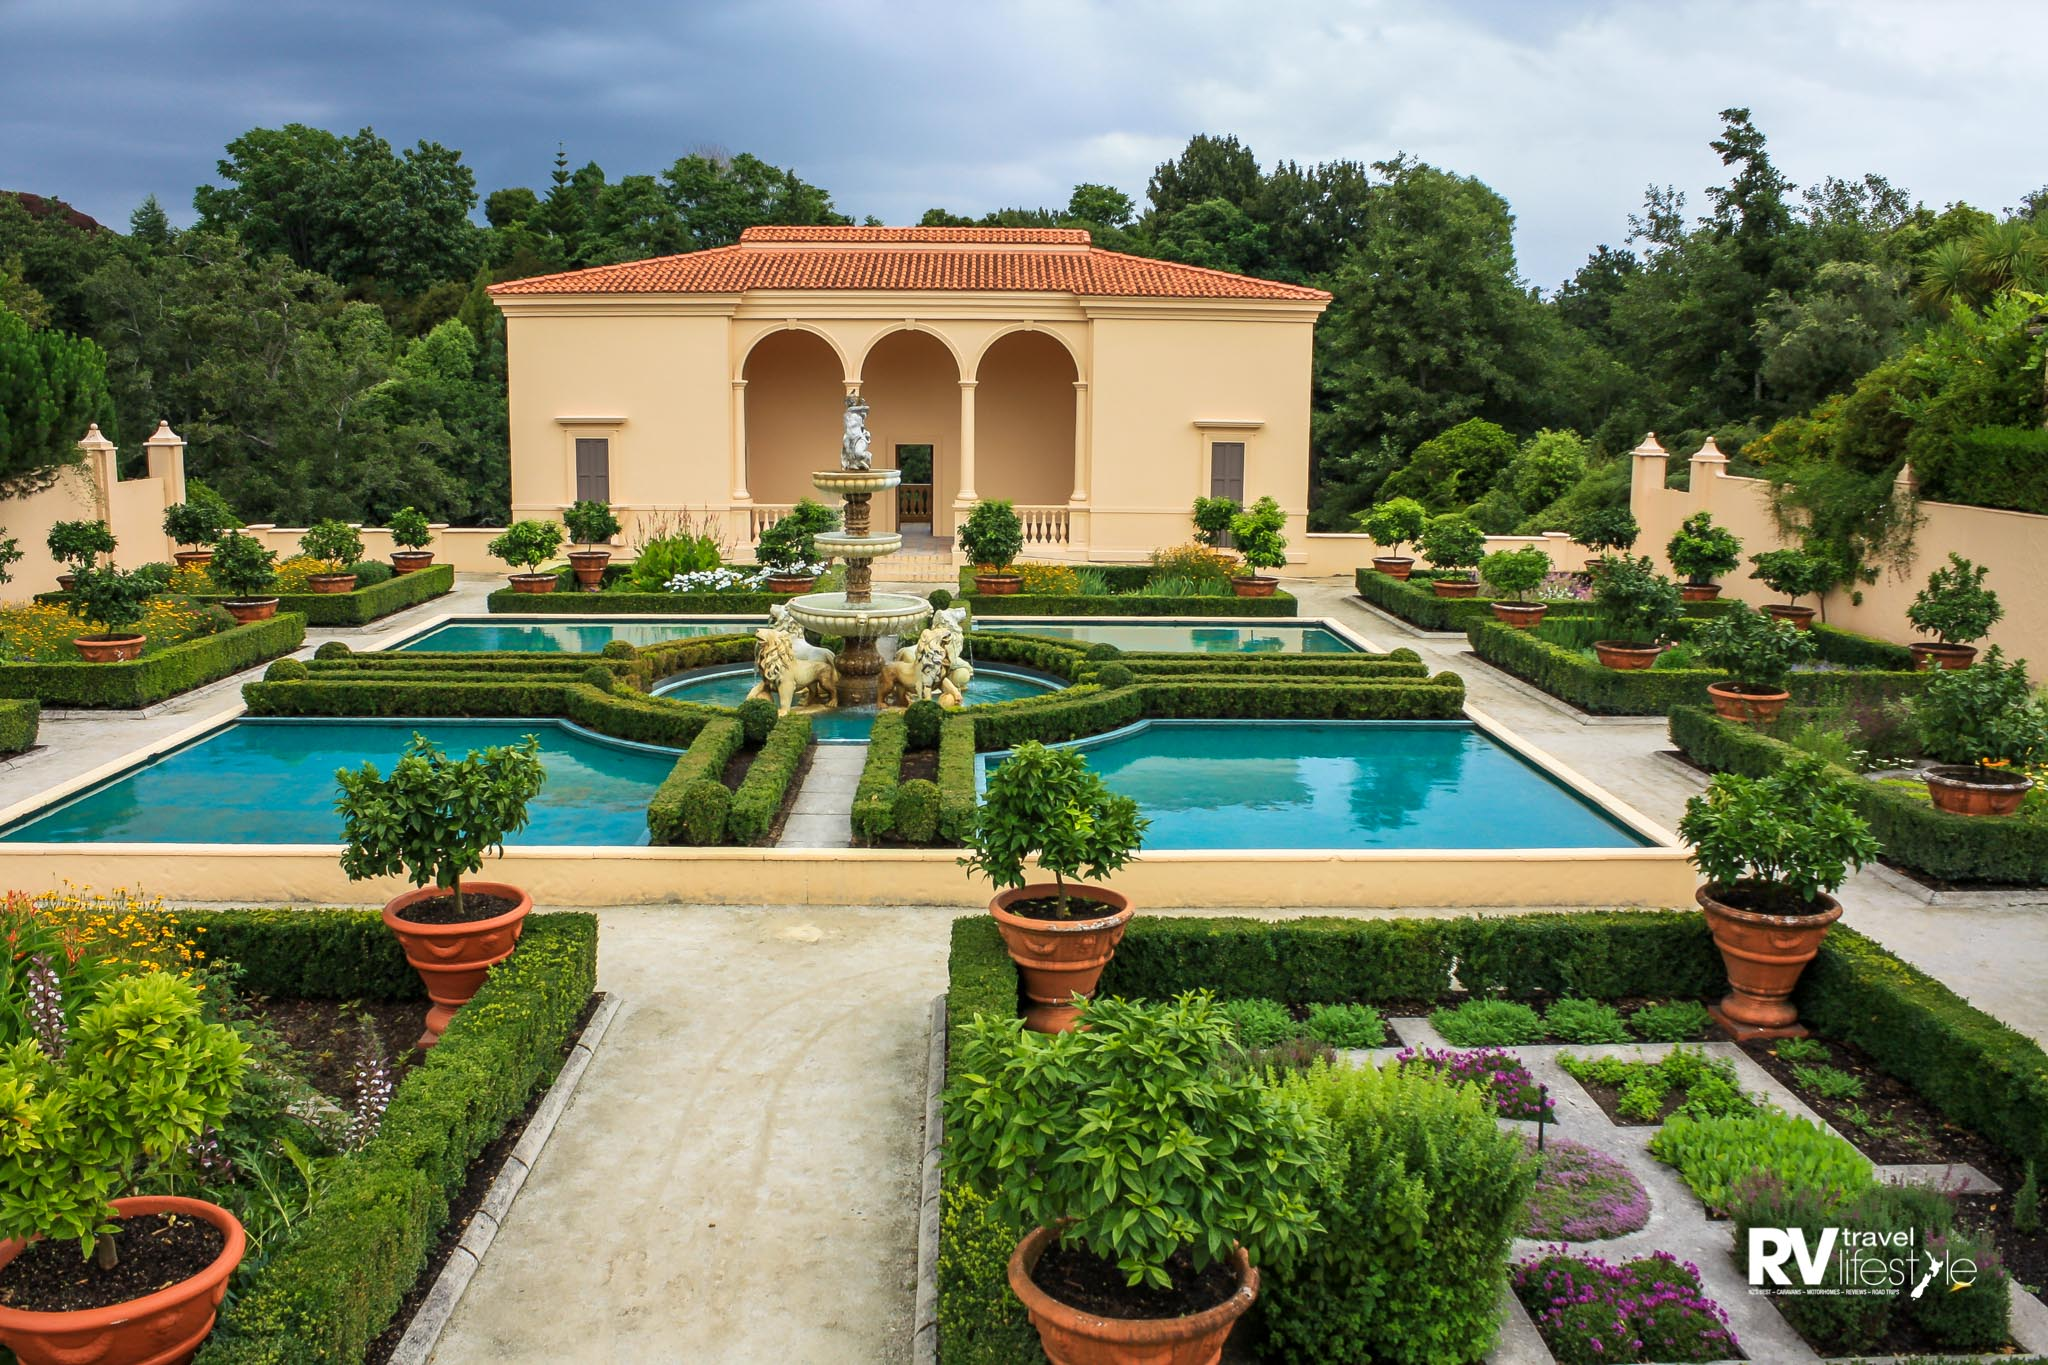 Elegance and charm denote the manicured Italian Garden